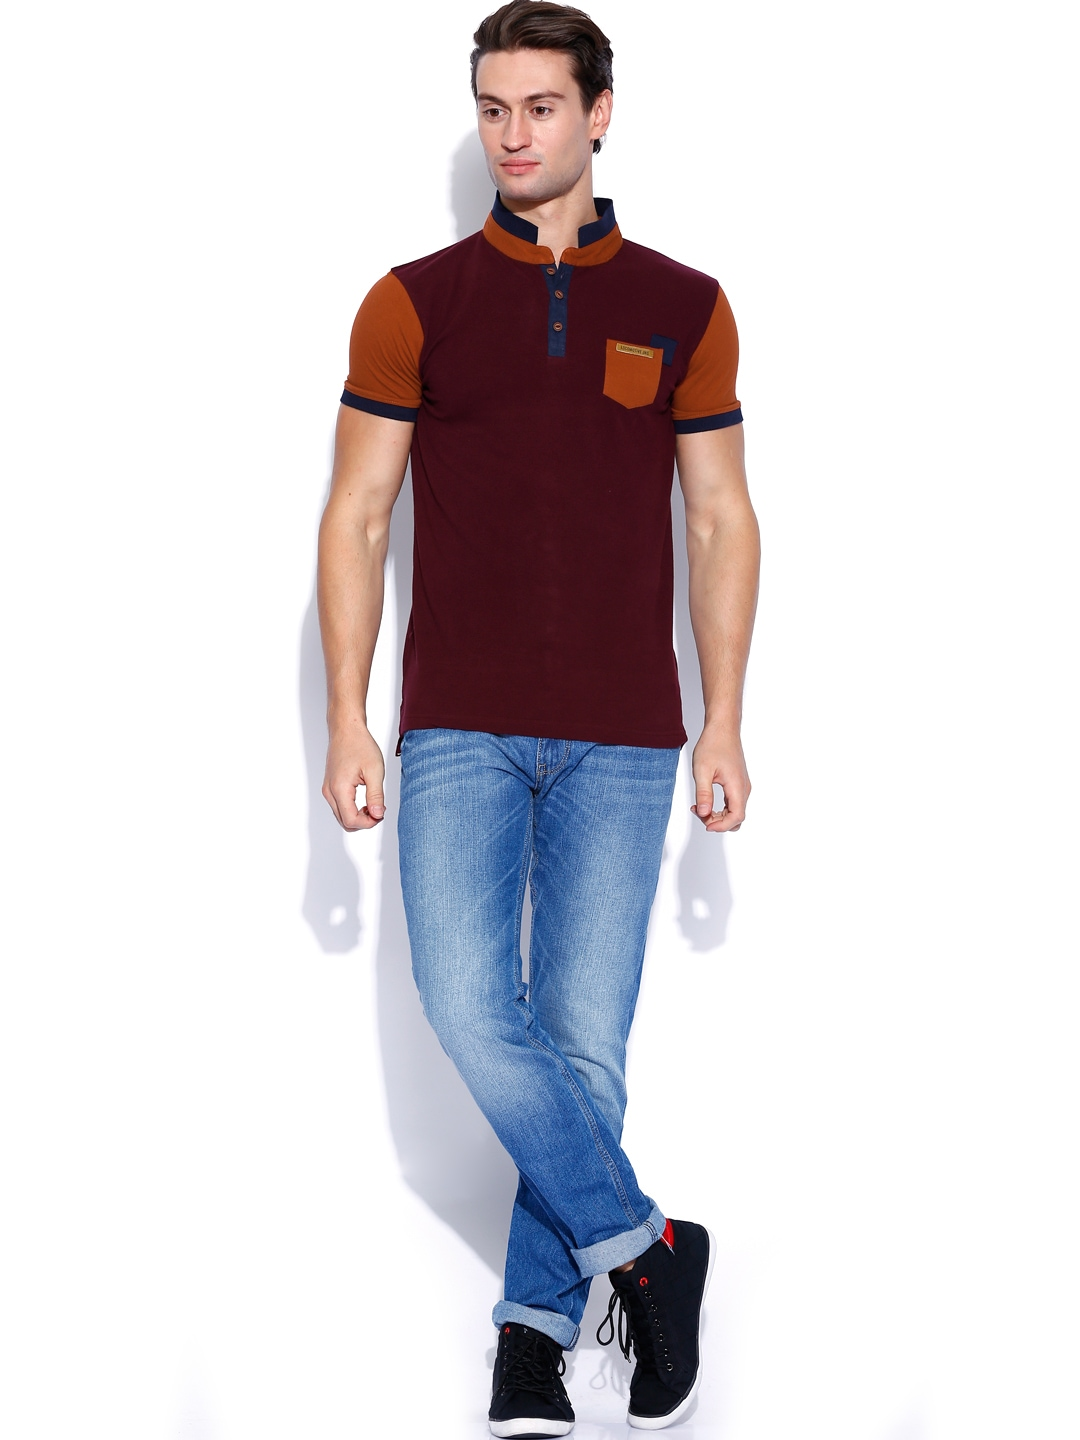 View Product Details More Tshirts By Locomotive More: burgundy polo shirt boys